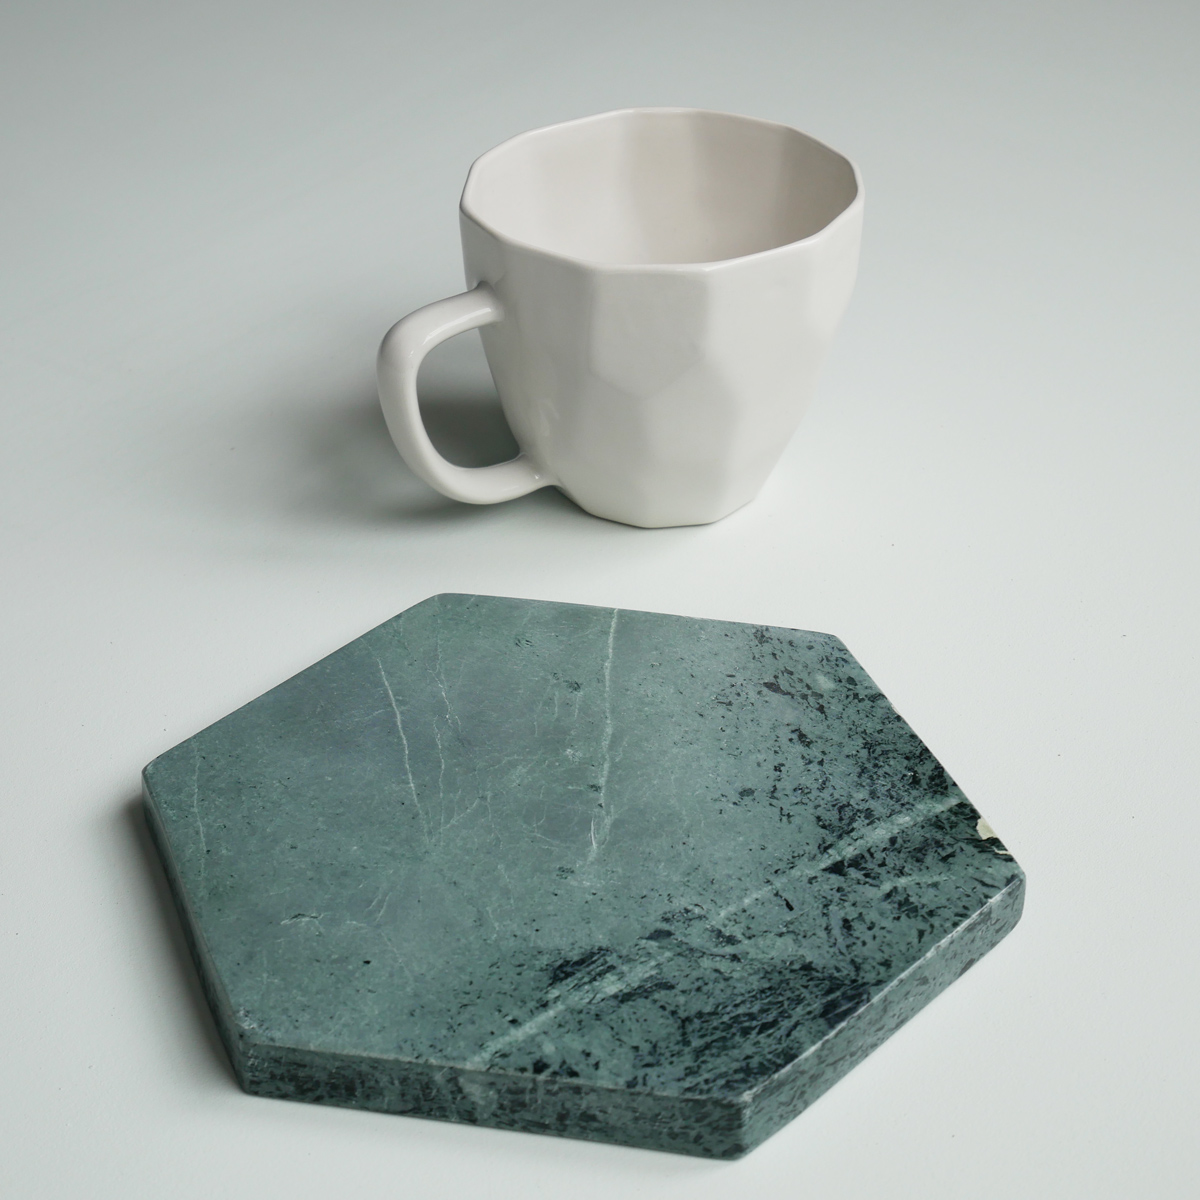 white-geometric-mug-next-to-green-hex-marble-liv-interior